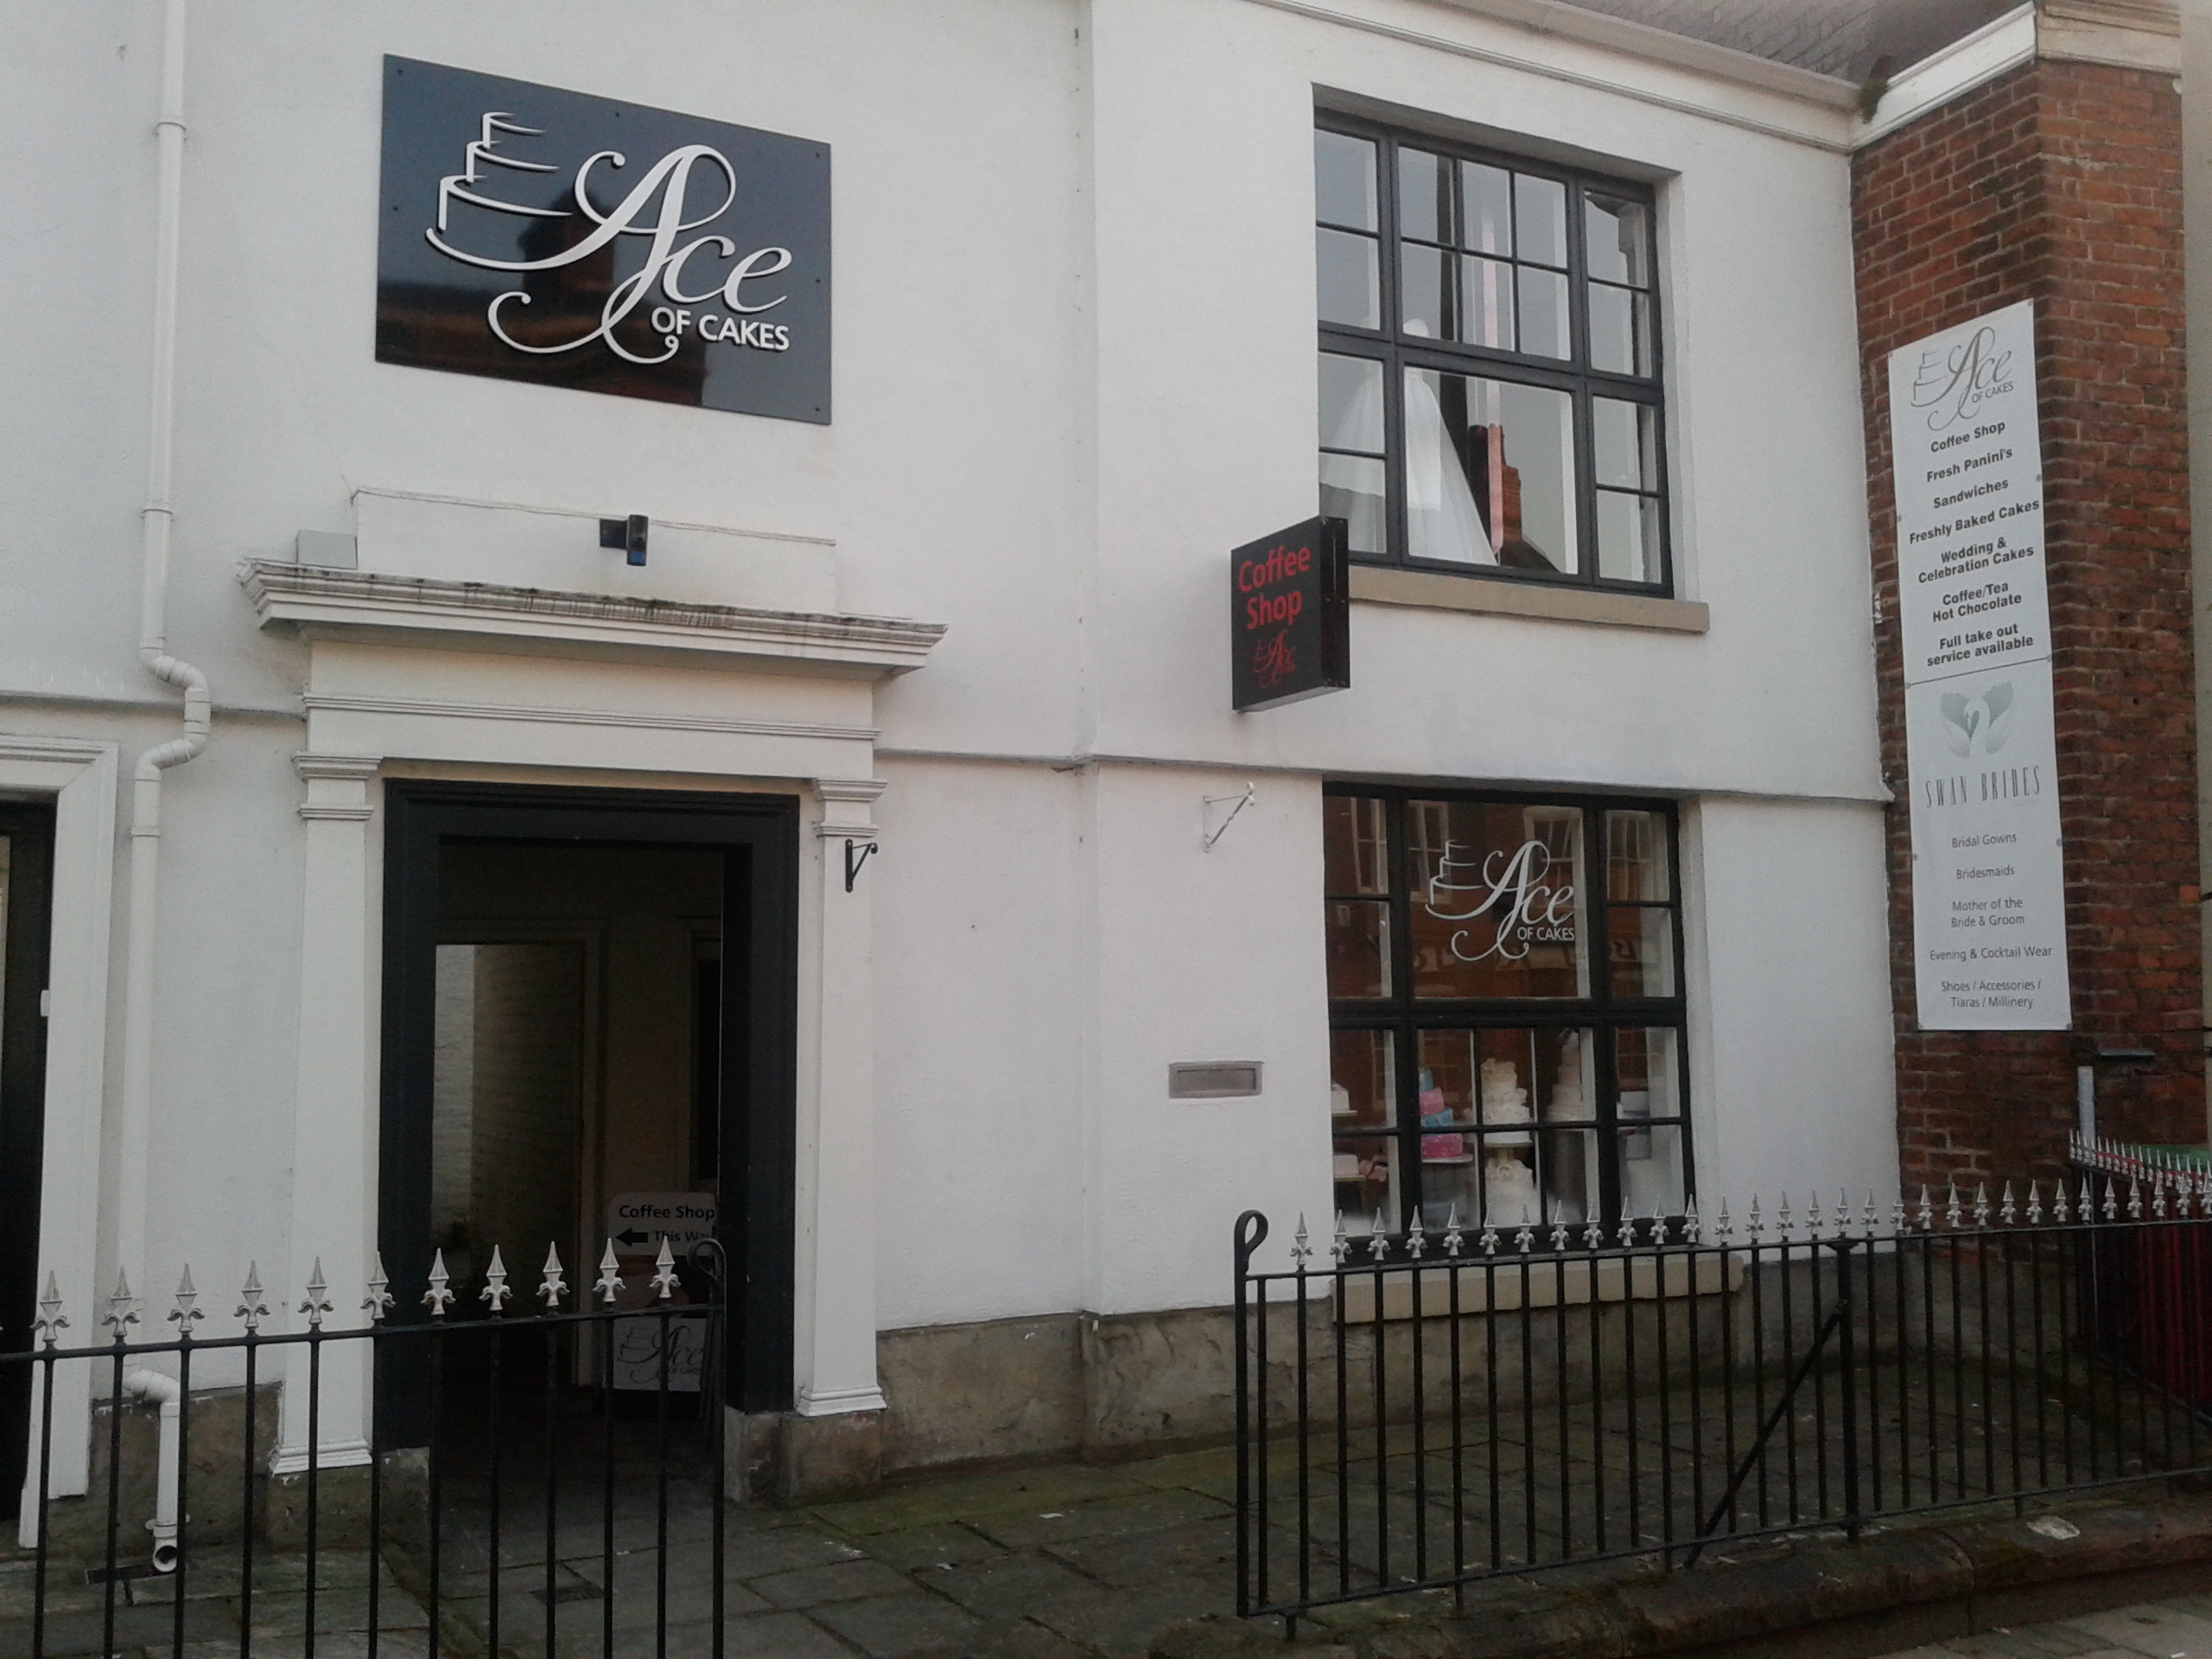 Ace of Cakes in Congleton